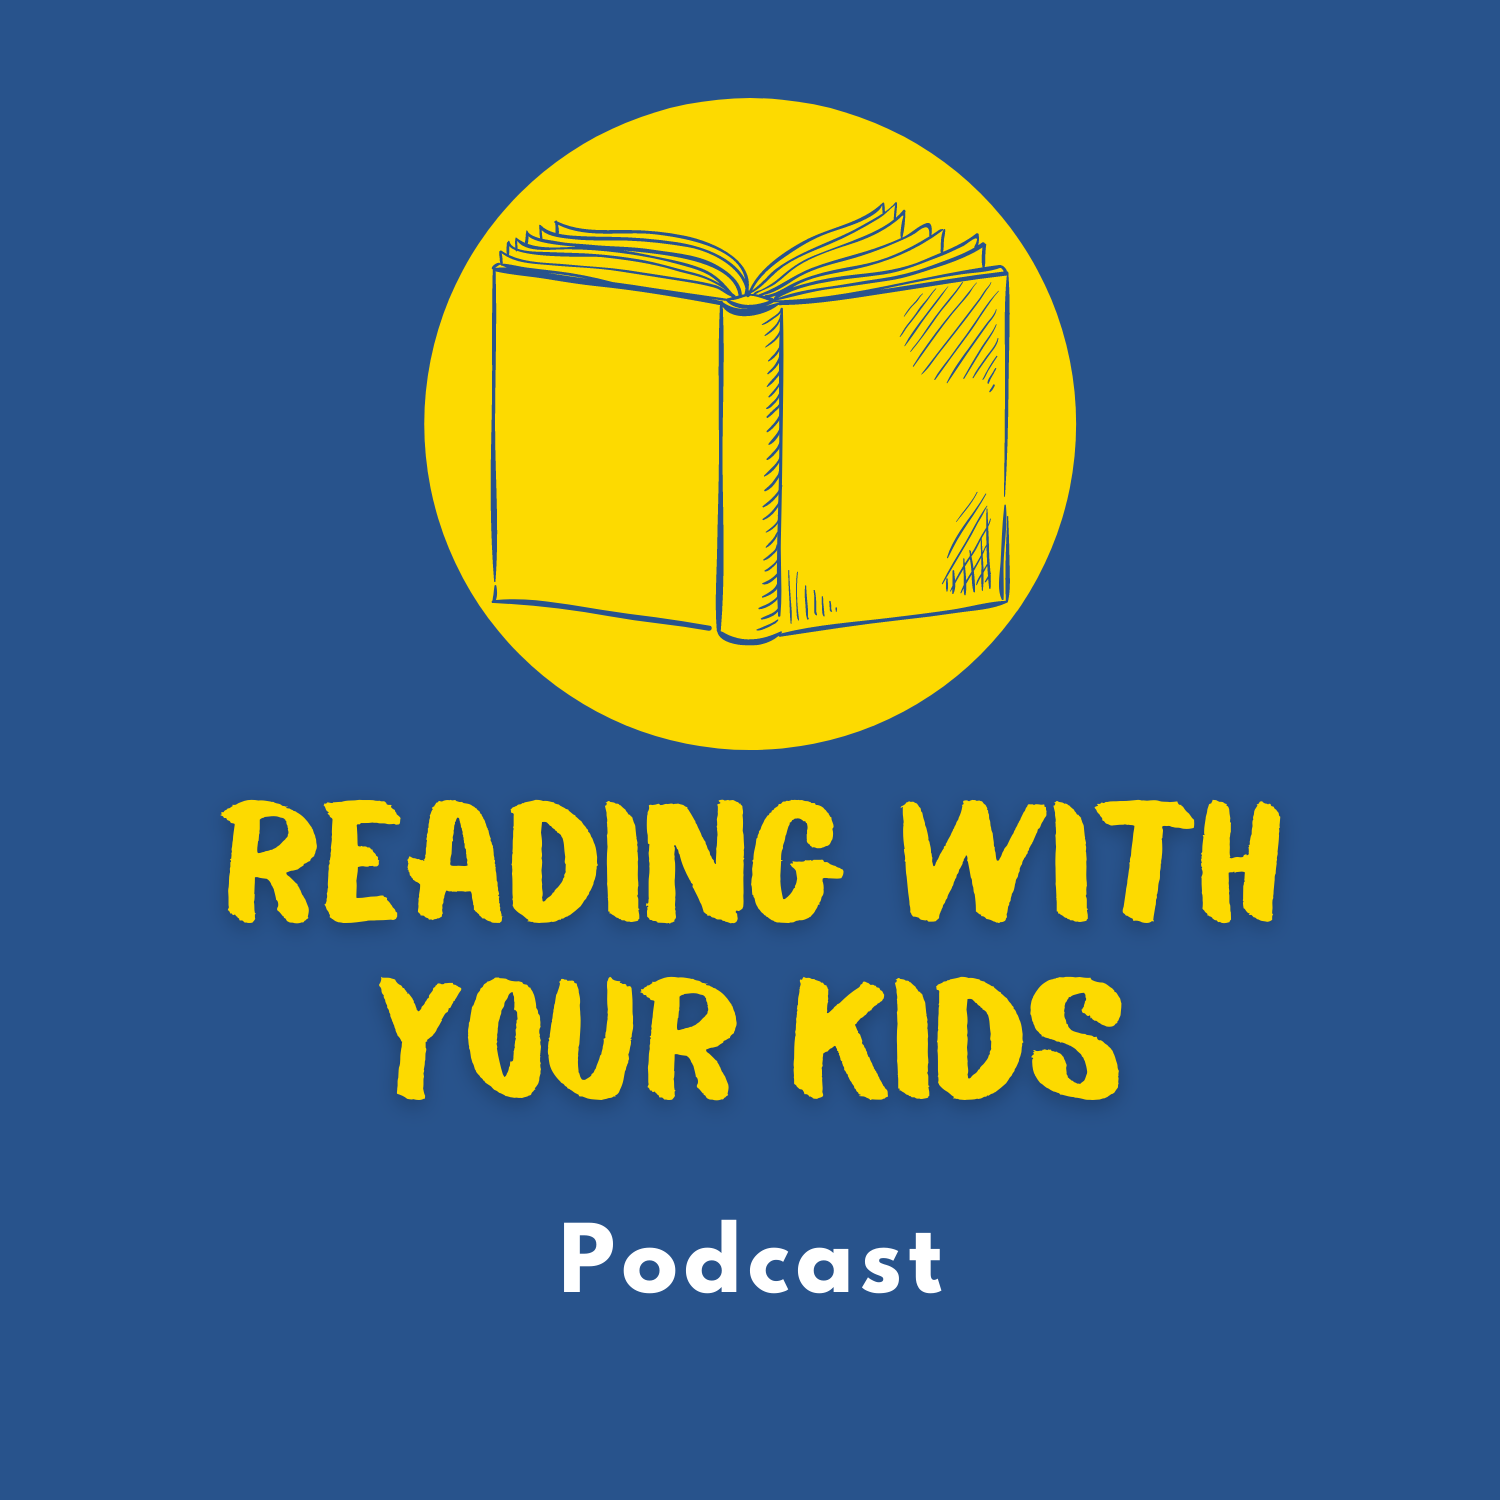 Listen to Reading With Your Kids - Catching Falling Cradles | Reading With Your Kids Podcast | Podcasts